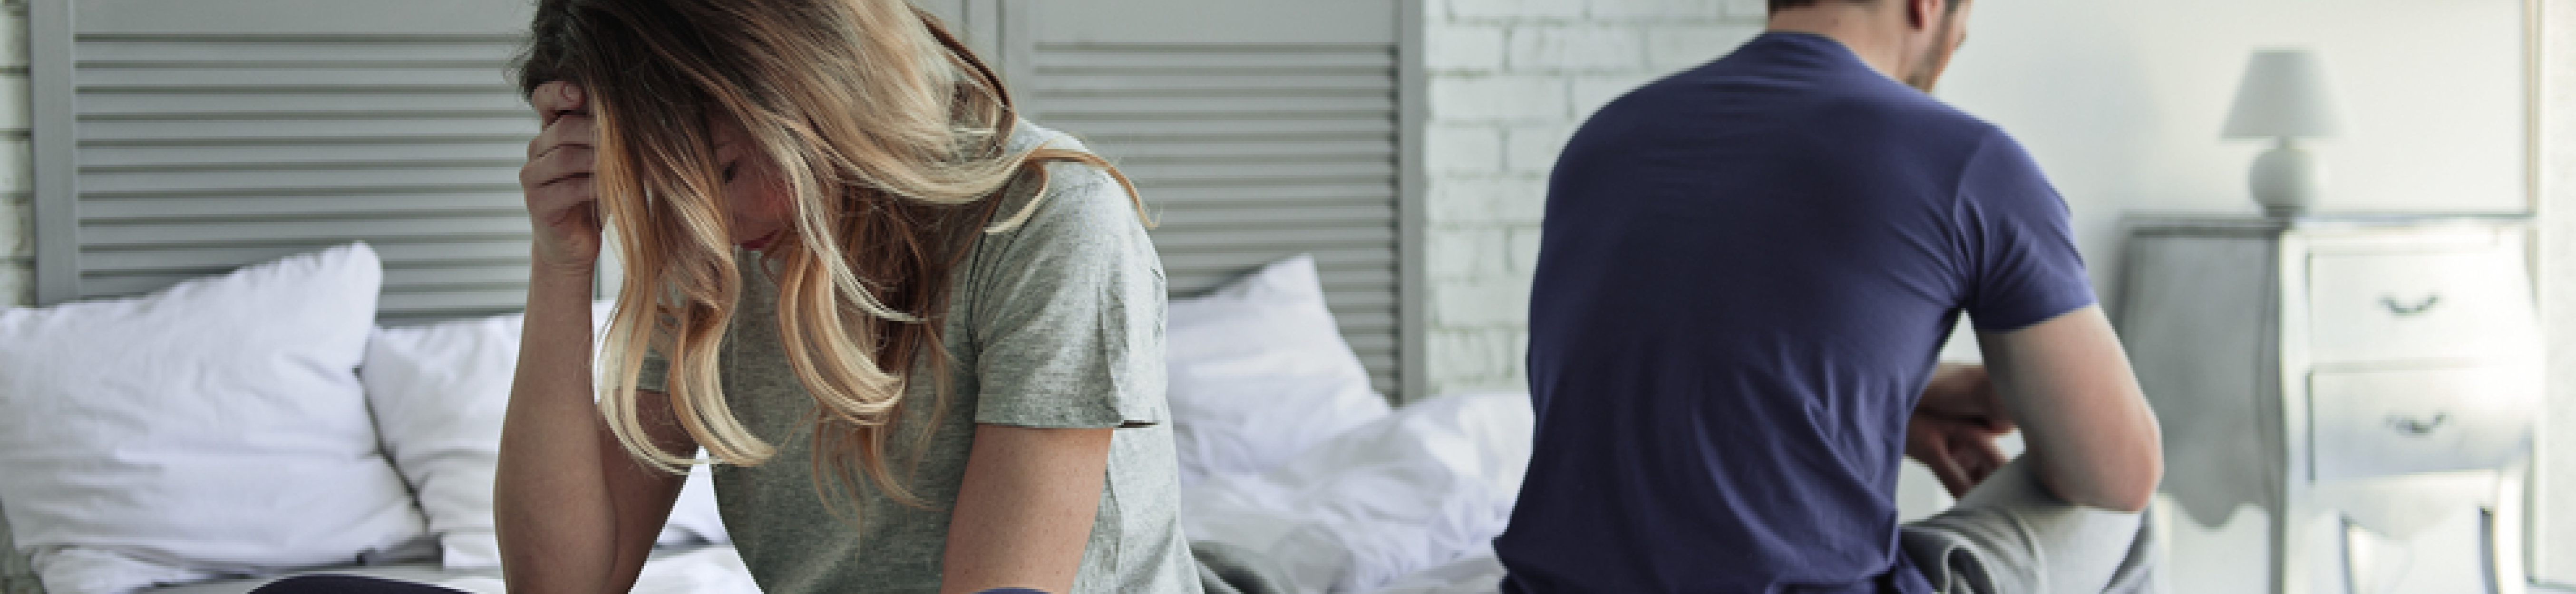 couple-arguing-on-bed-header